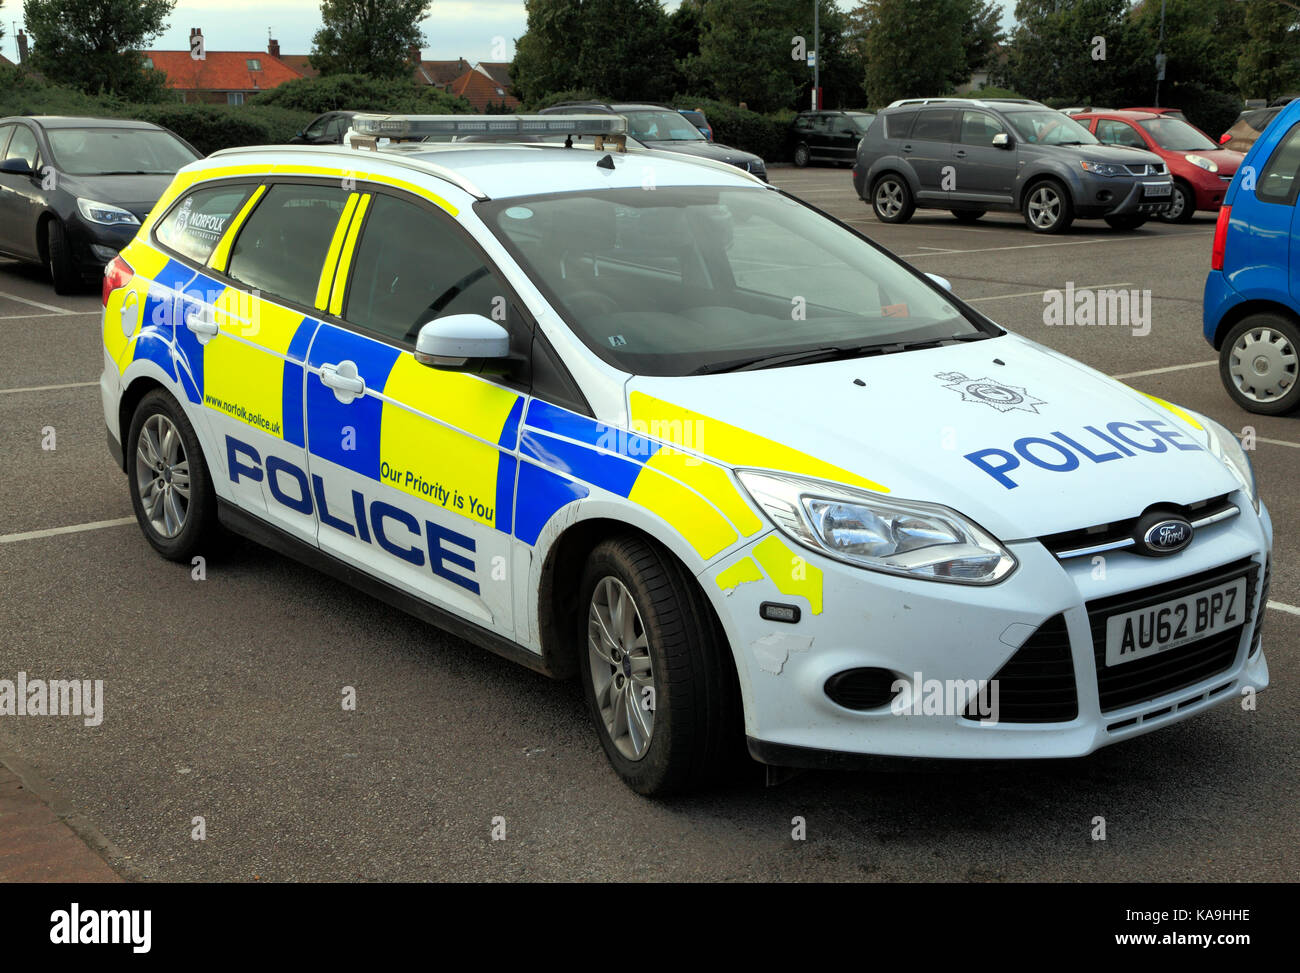 uk police cars stock photos uk police cars stock images. Black Bedroom Furniture Sets. Home Design Ideas